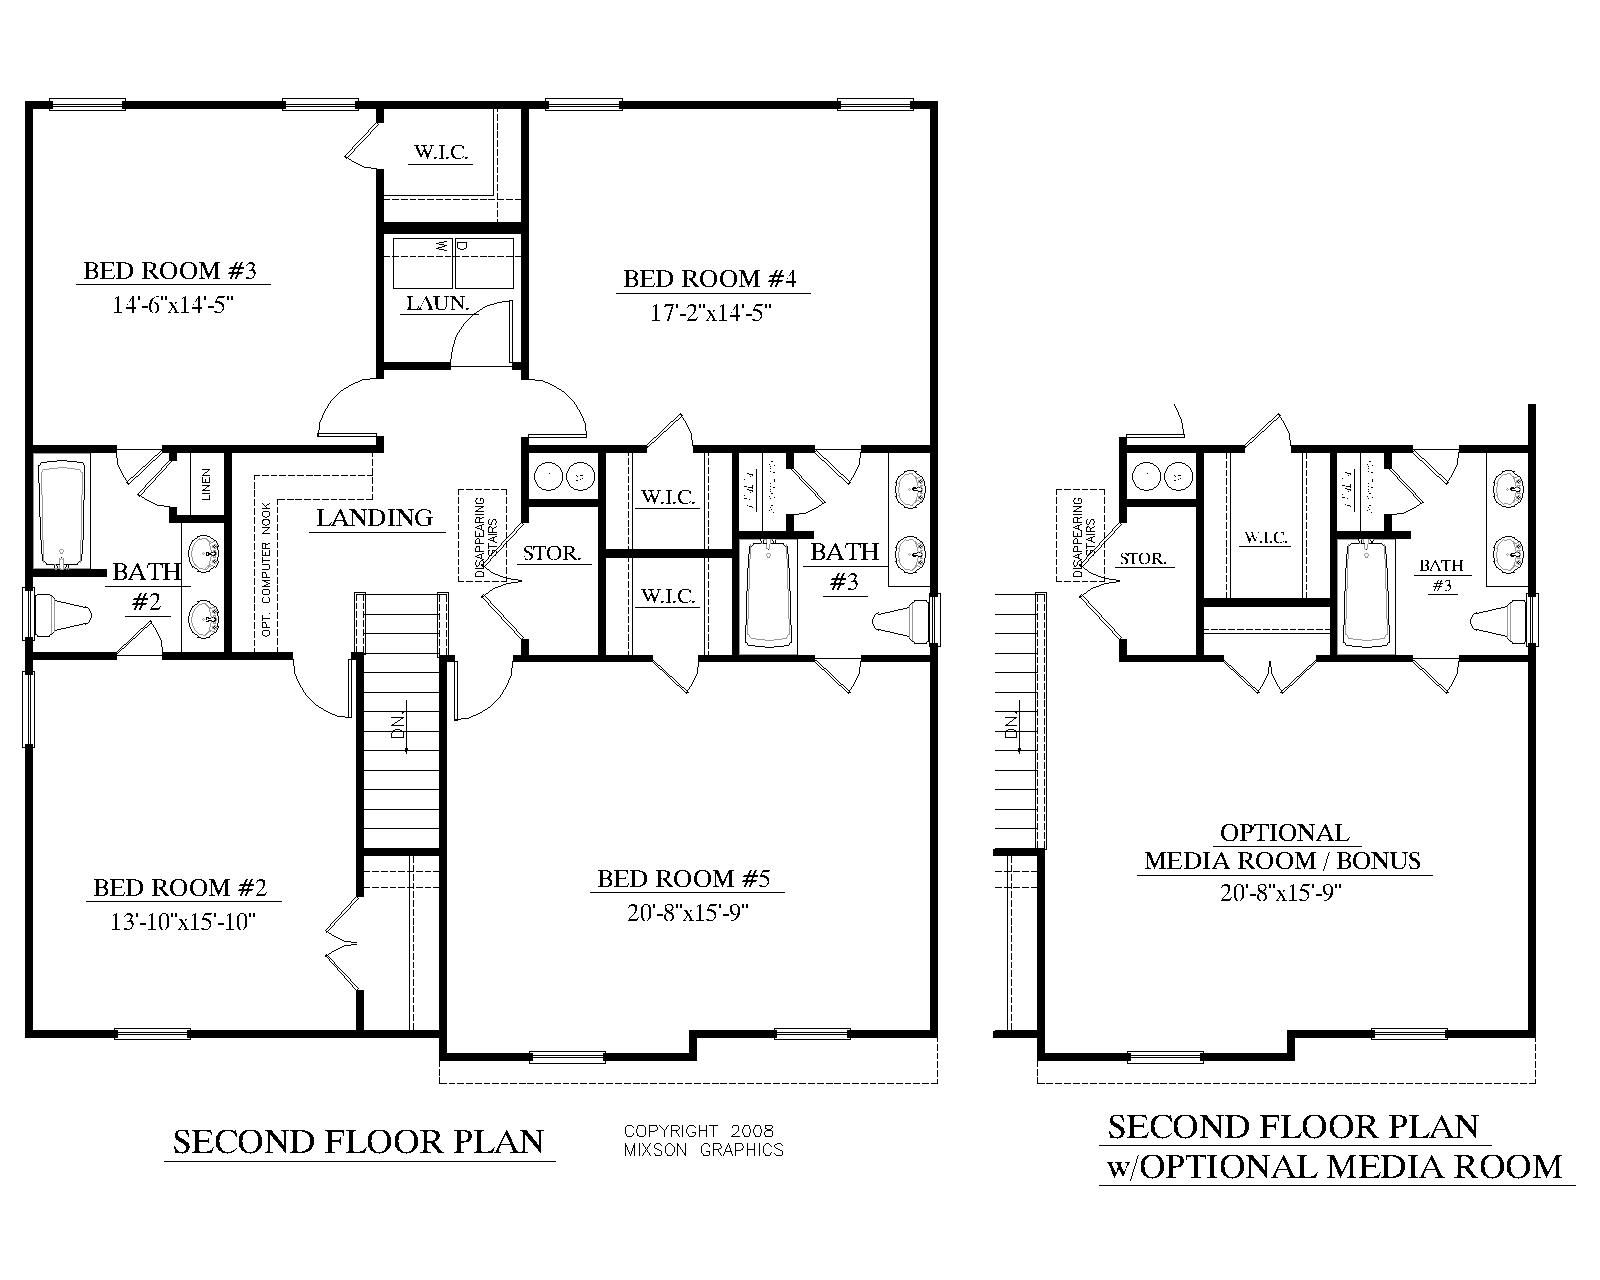 House plan 2691 a mccormick 2nd floor plan 2691 square for 2nd story house plans